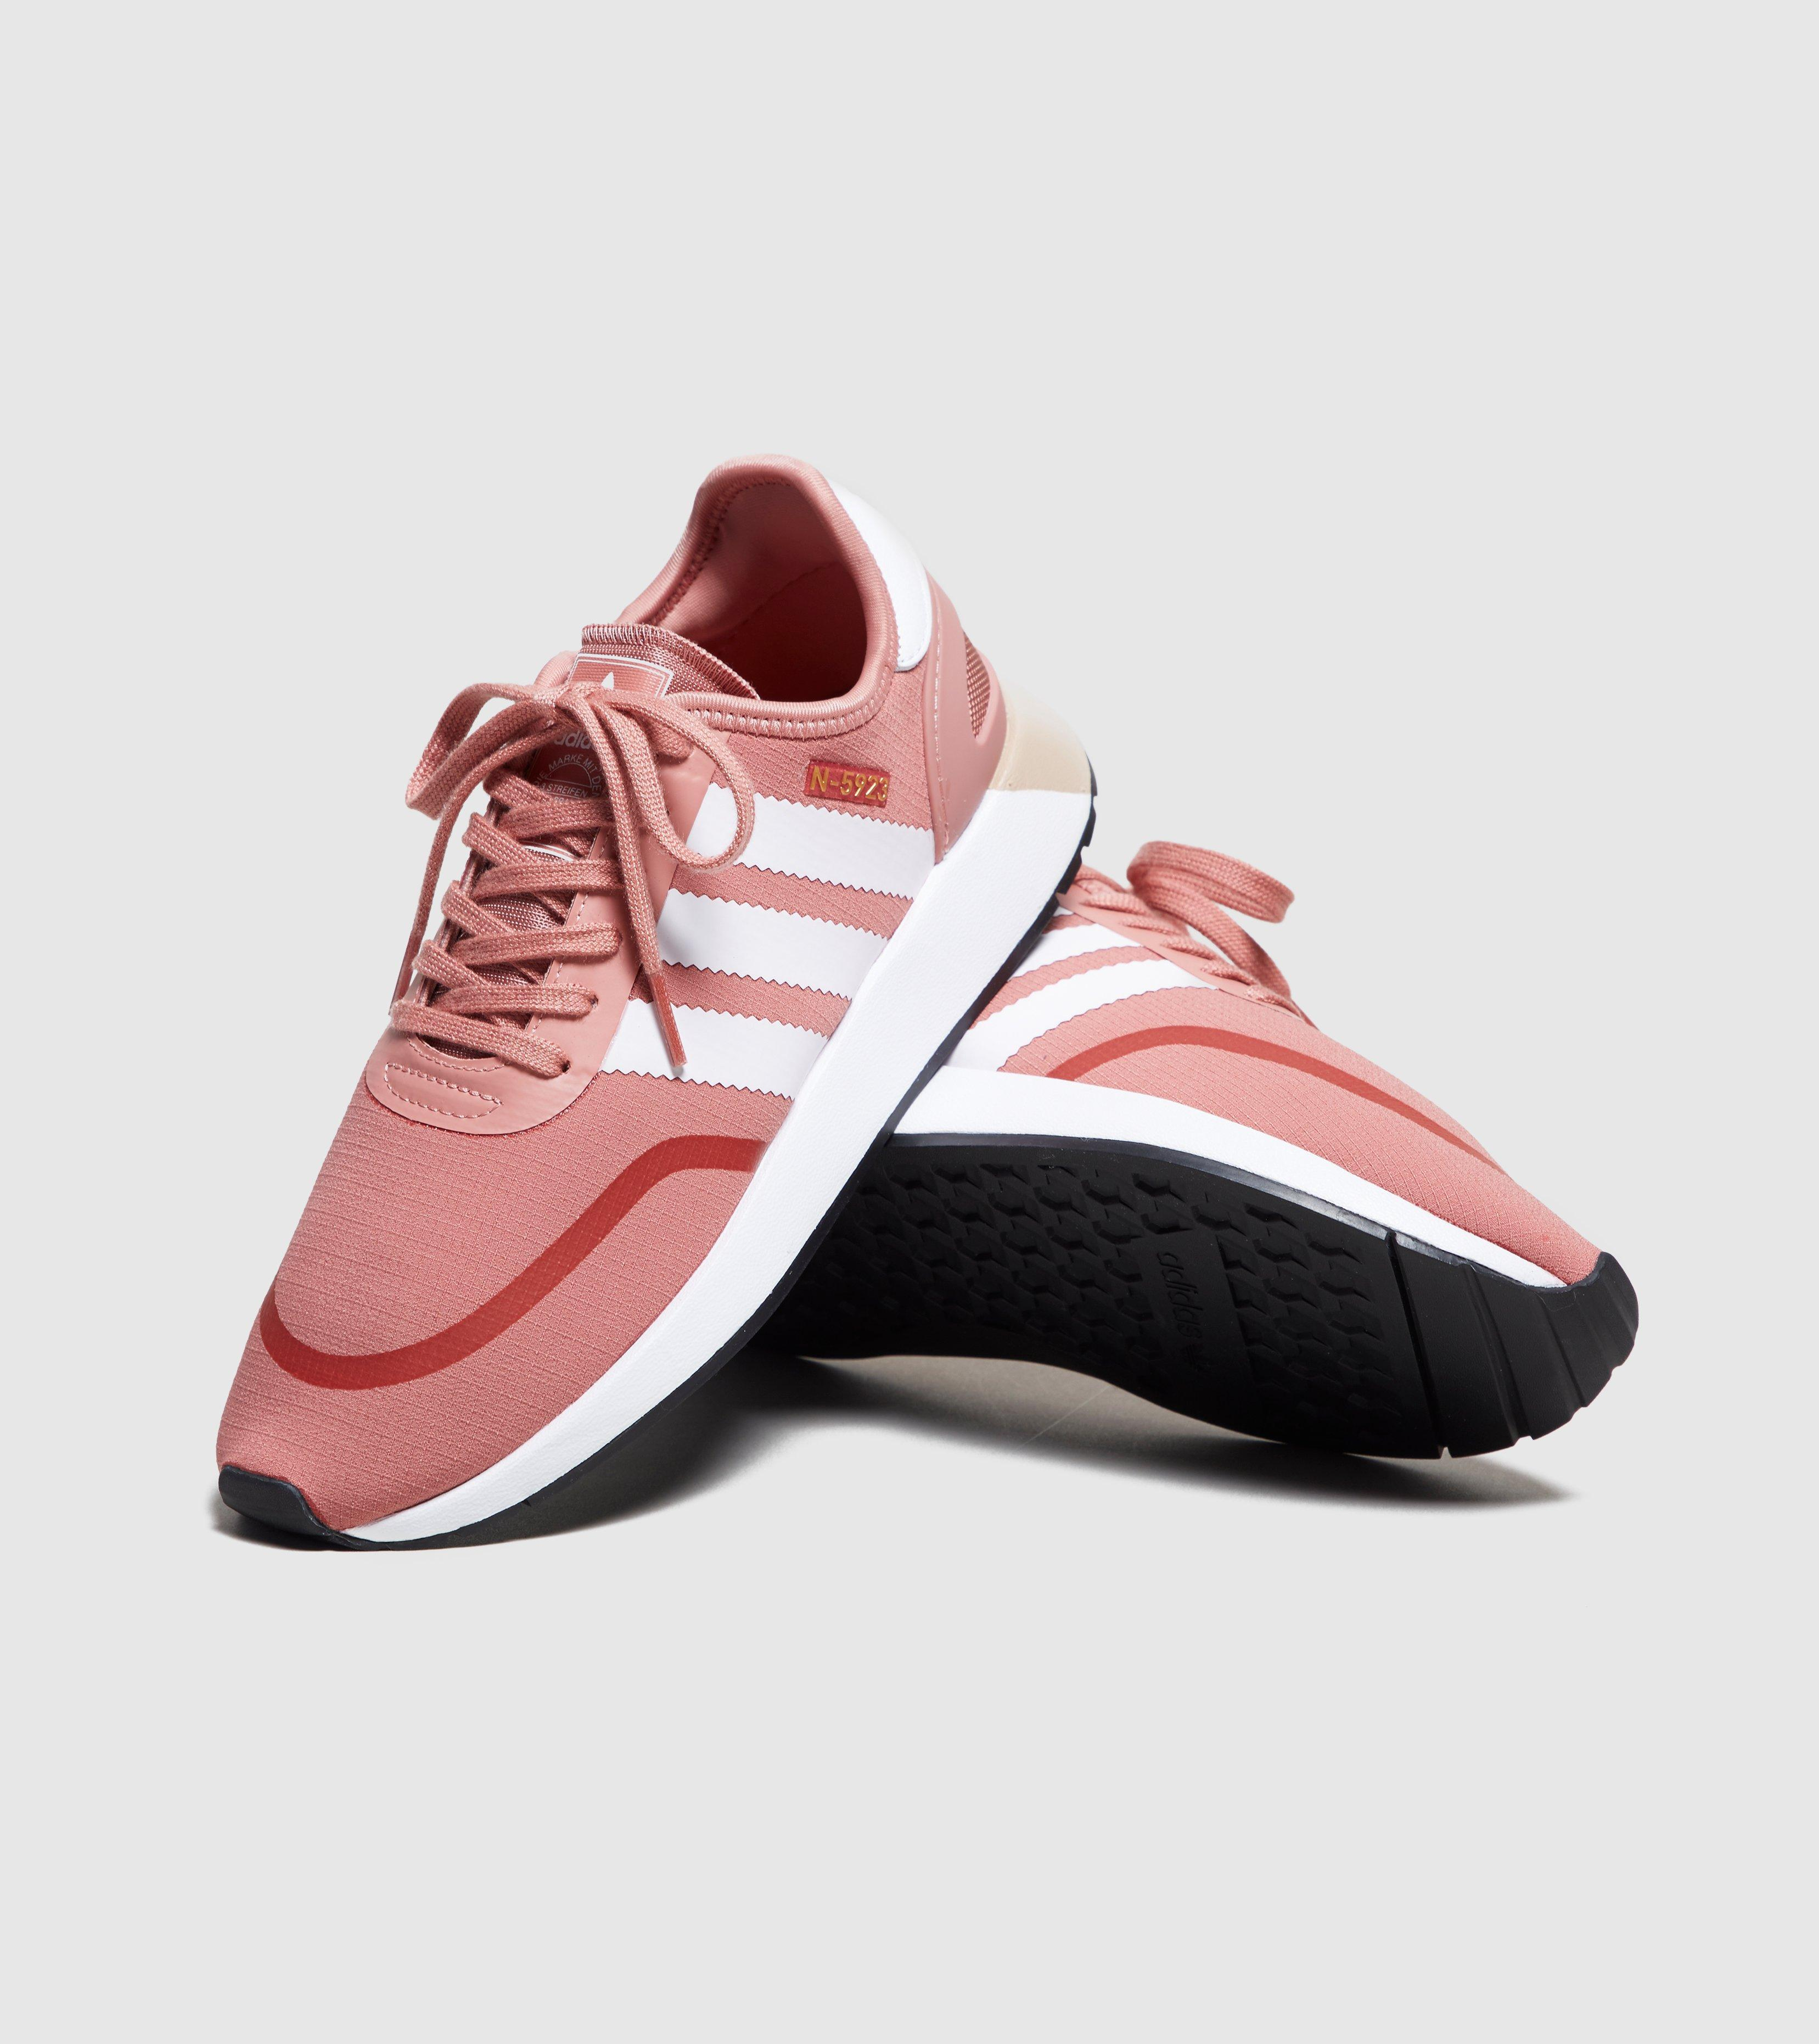 outlet store 8f01e 47f21 Lyst - adidas Originals N-5923 Womens in Pink